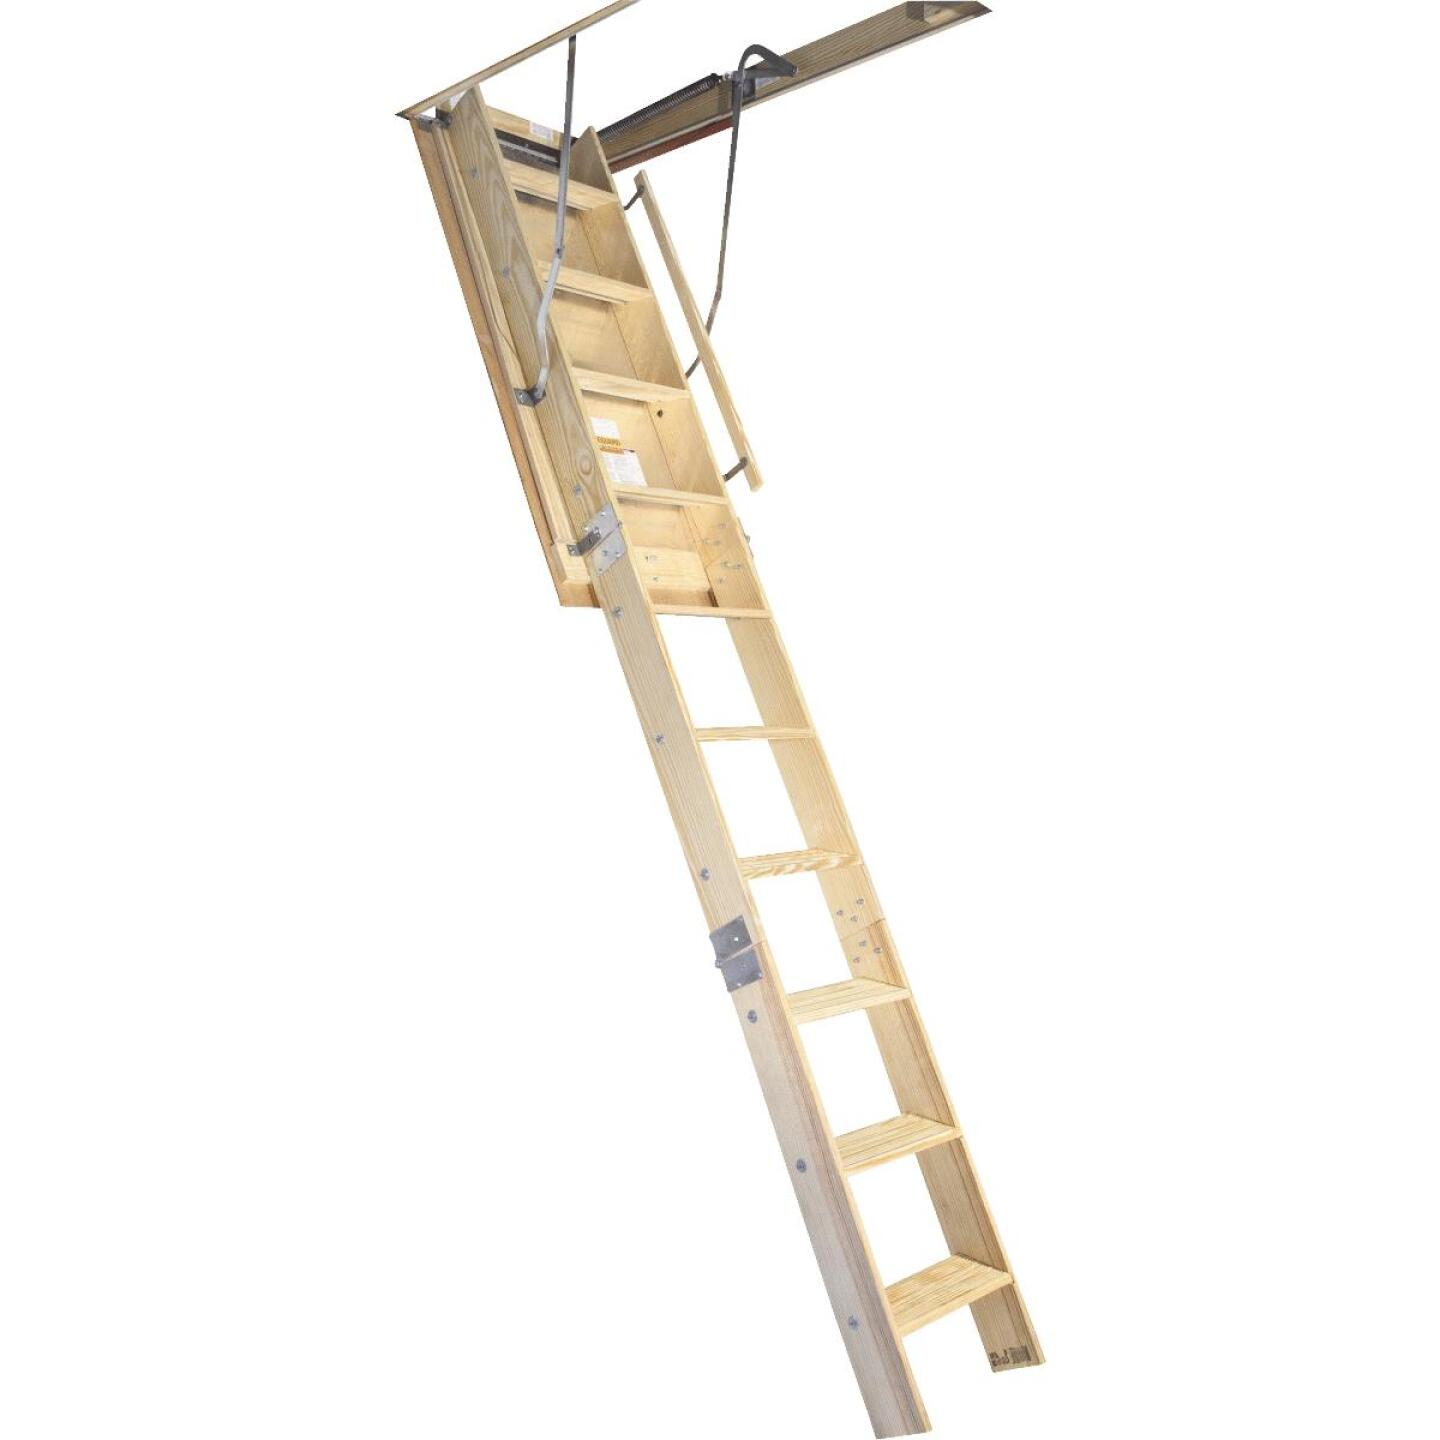 Louisville Champion 7 Ft. to 8 Ft. 9 In. 25-1/2 In. x 54 In. Wood Attic Stairs, 300 Lb. Load Image 1